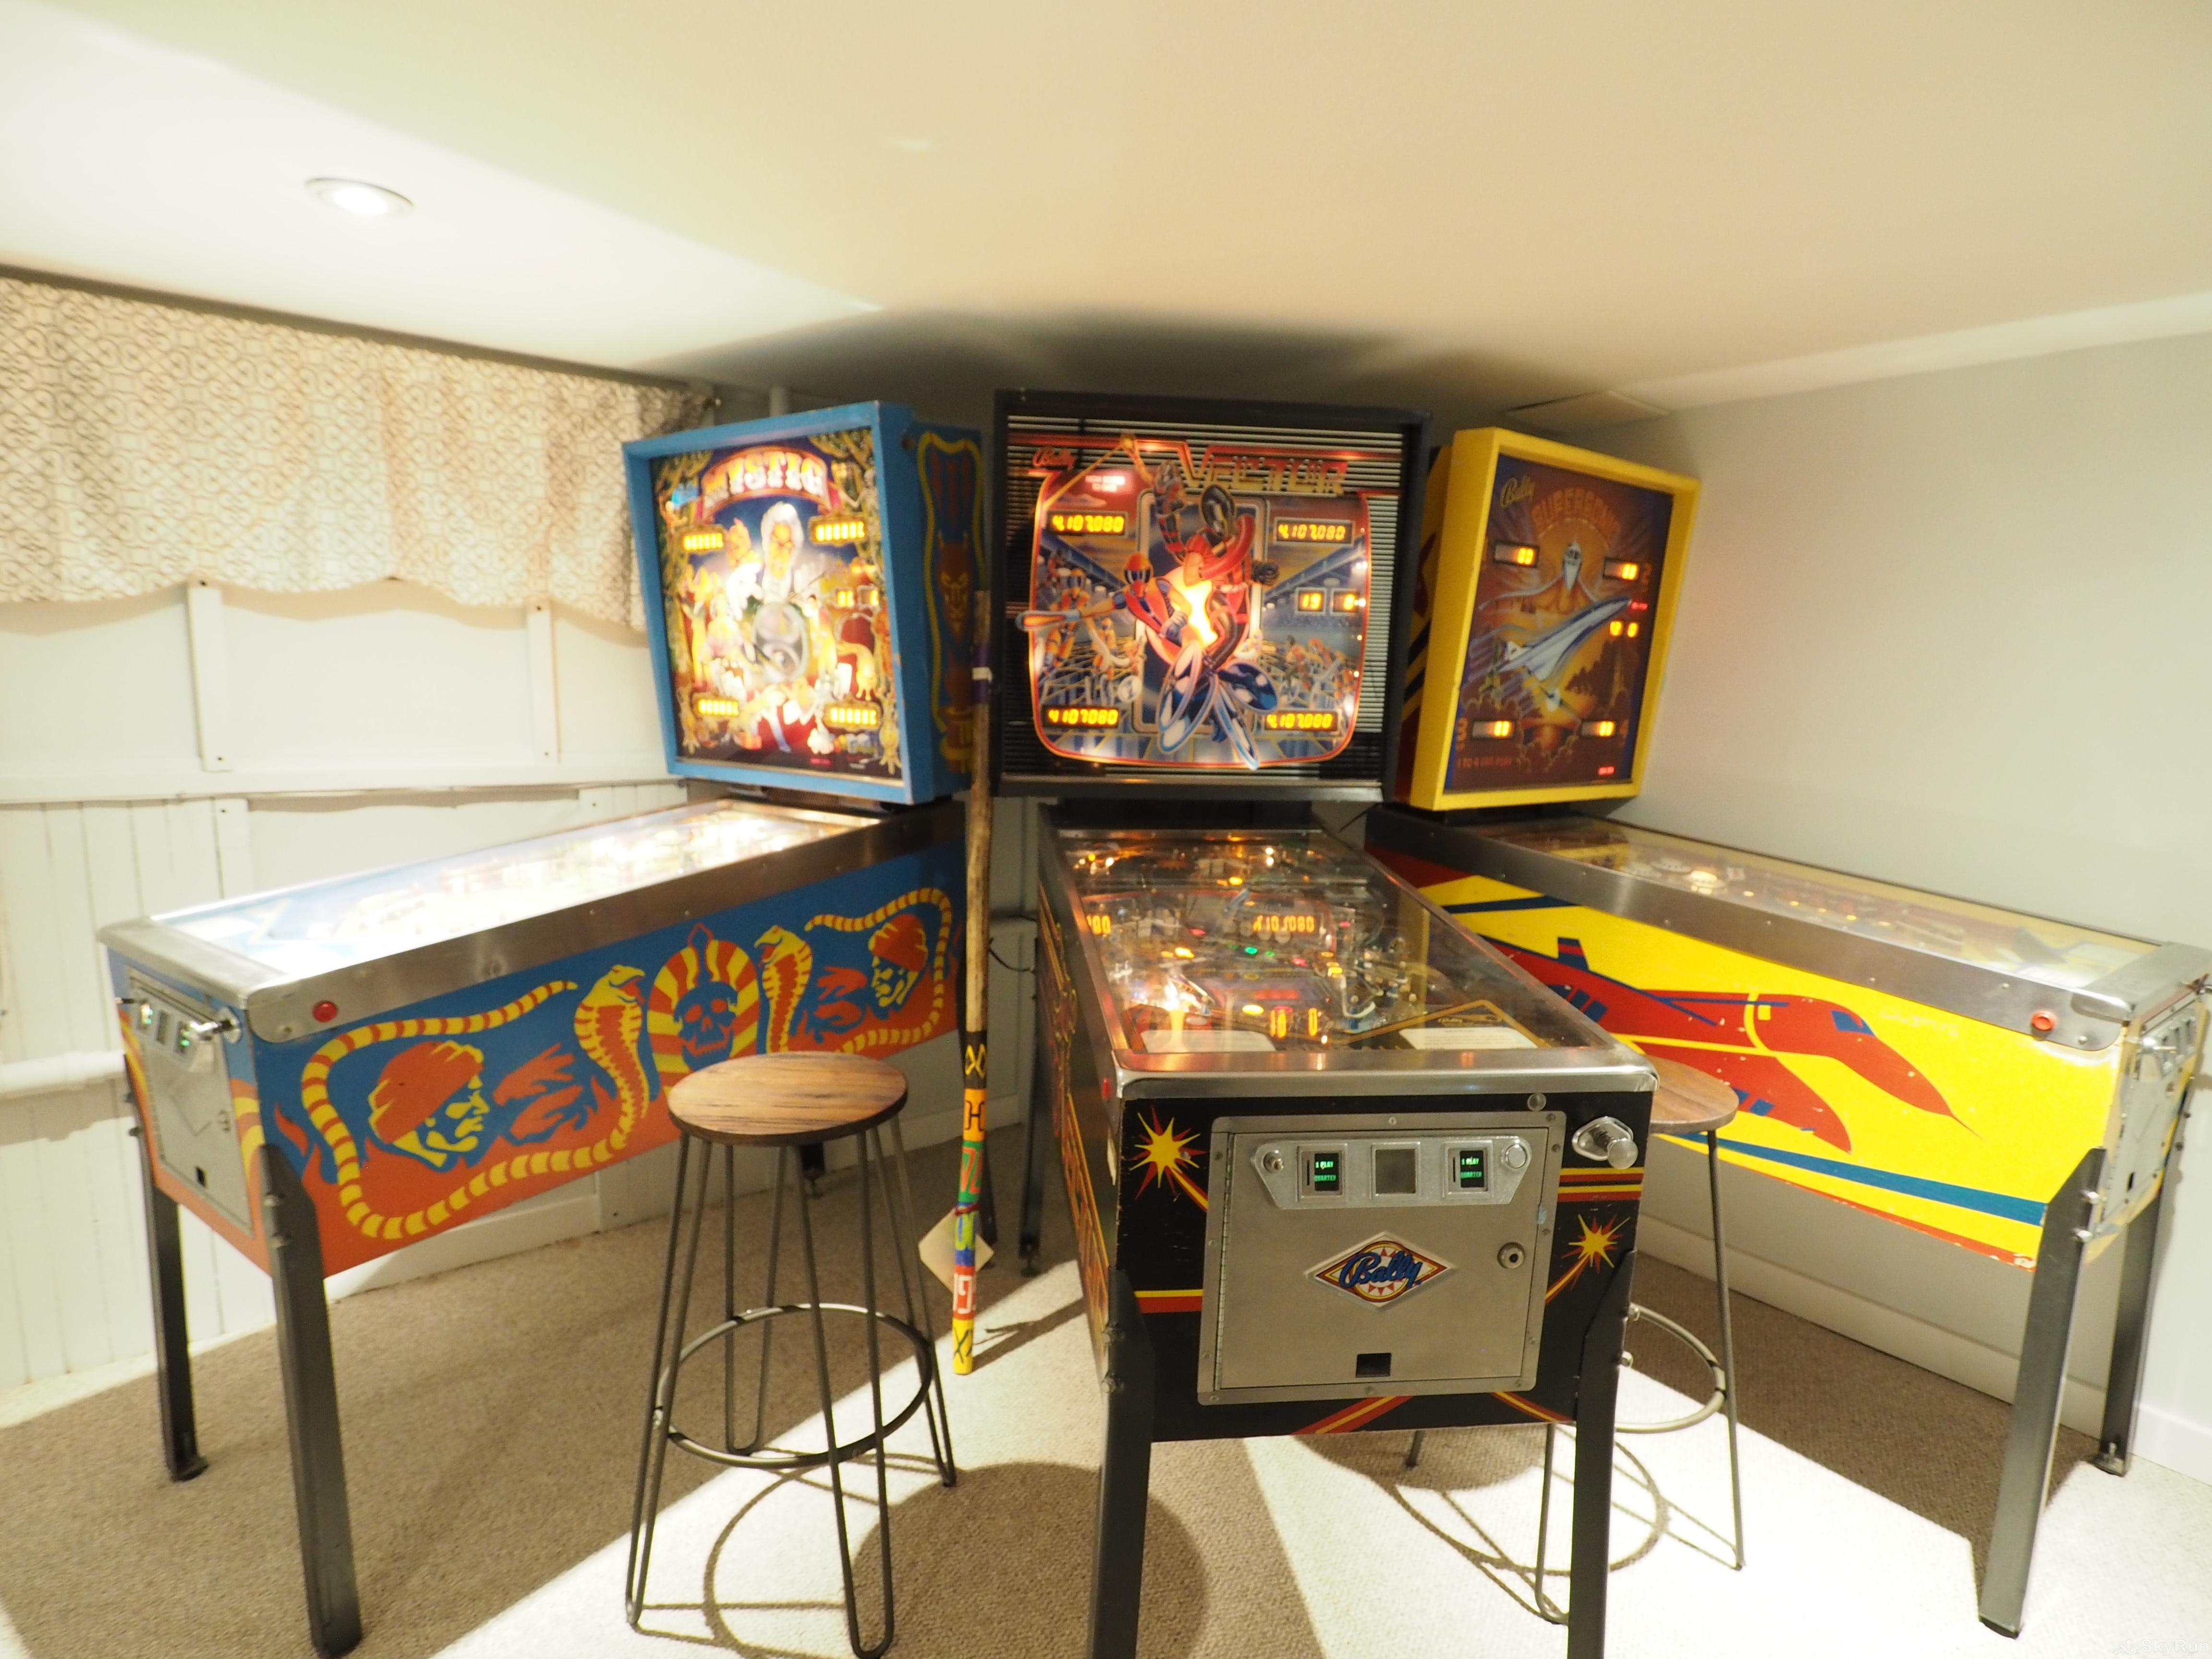 Penticton Country Estate Original working pin ball machines and video arcade games